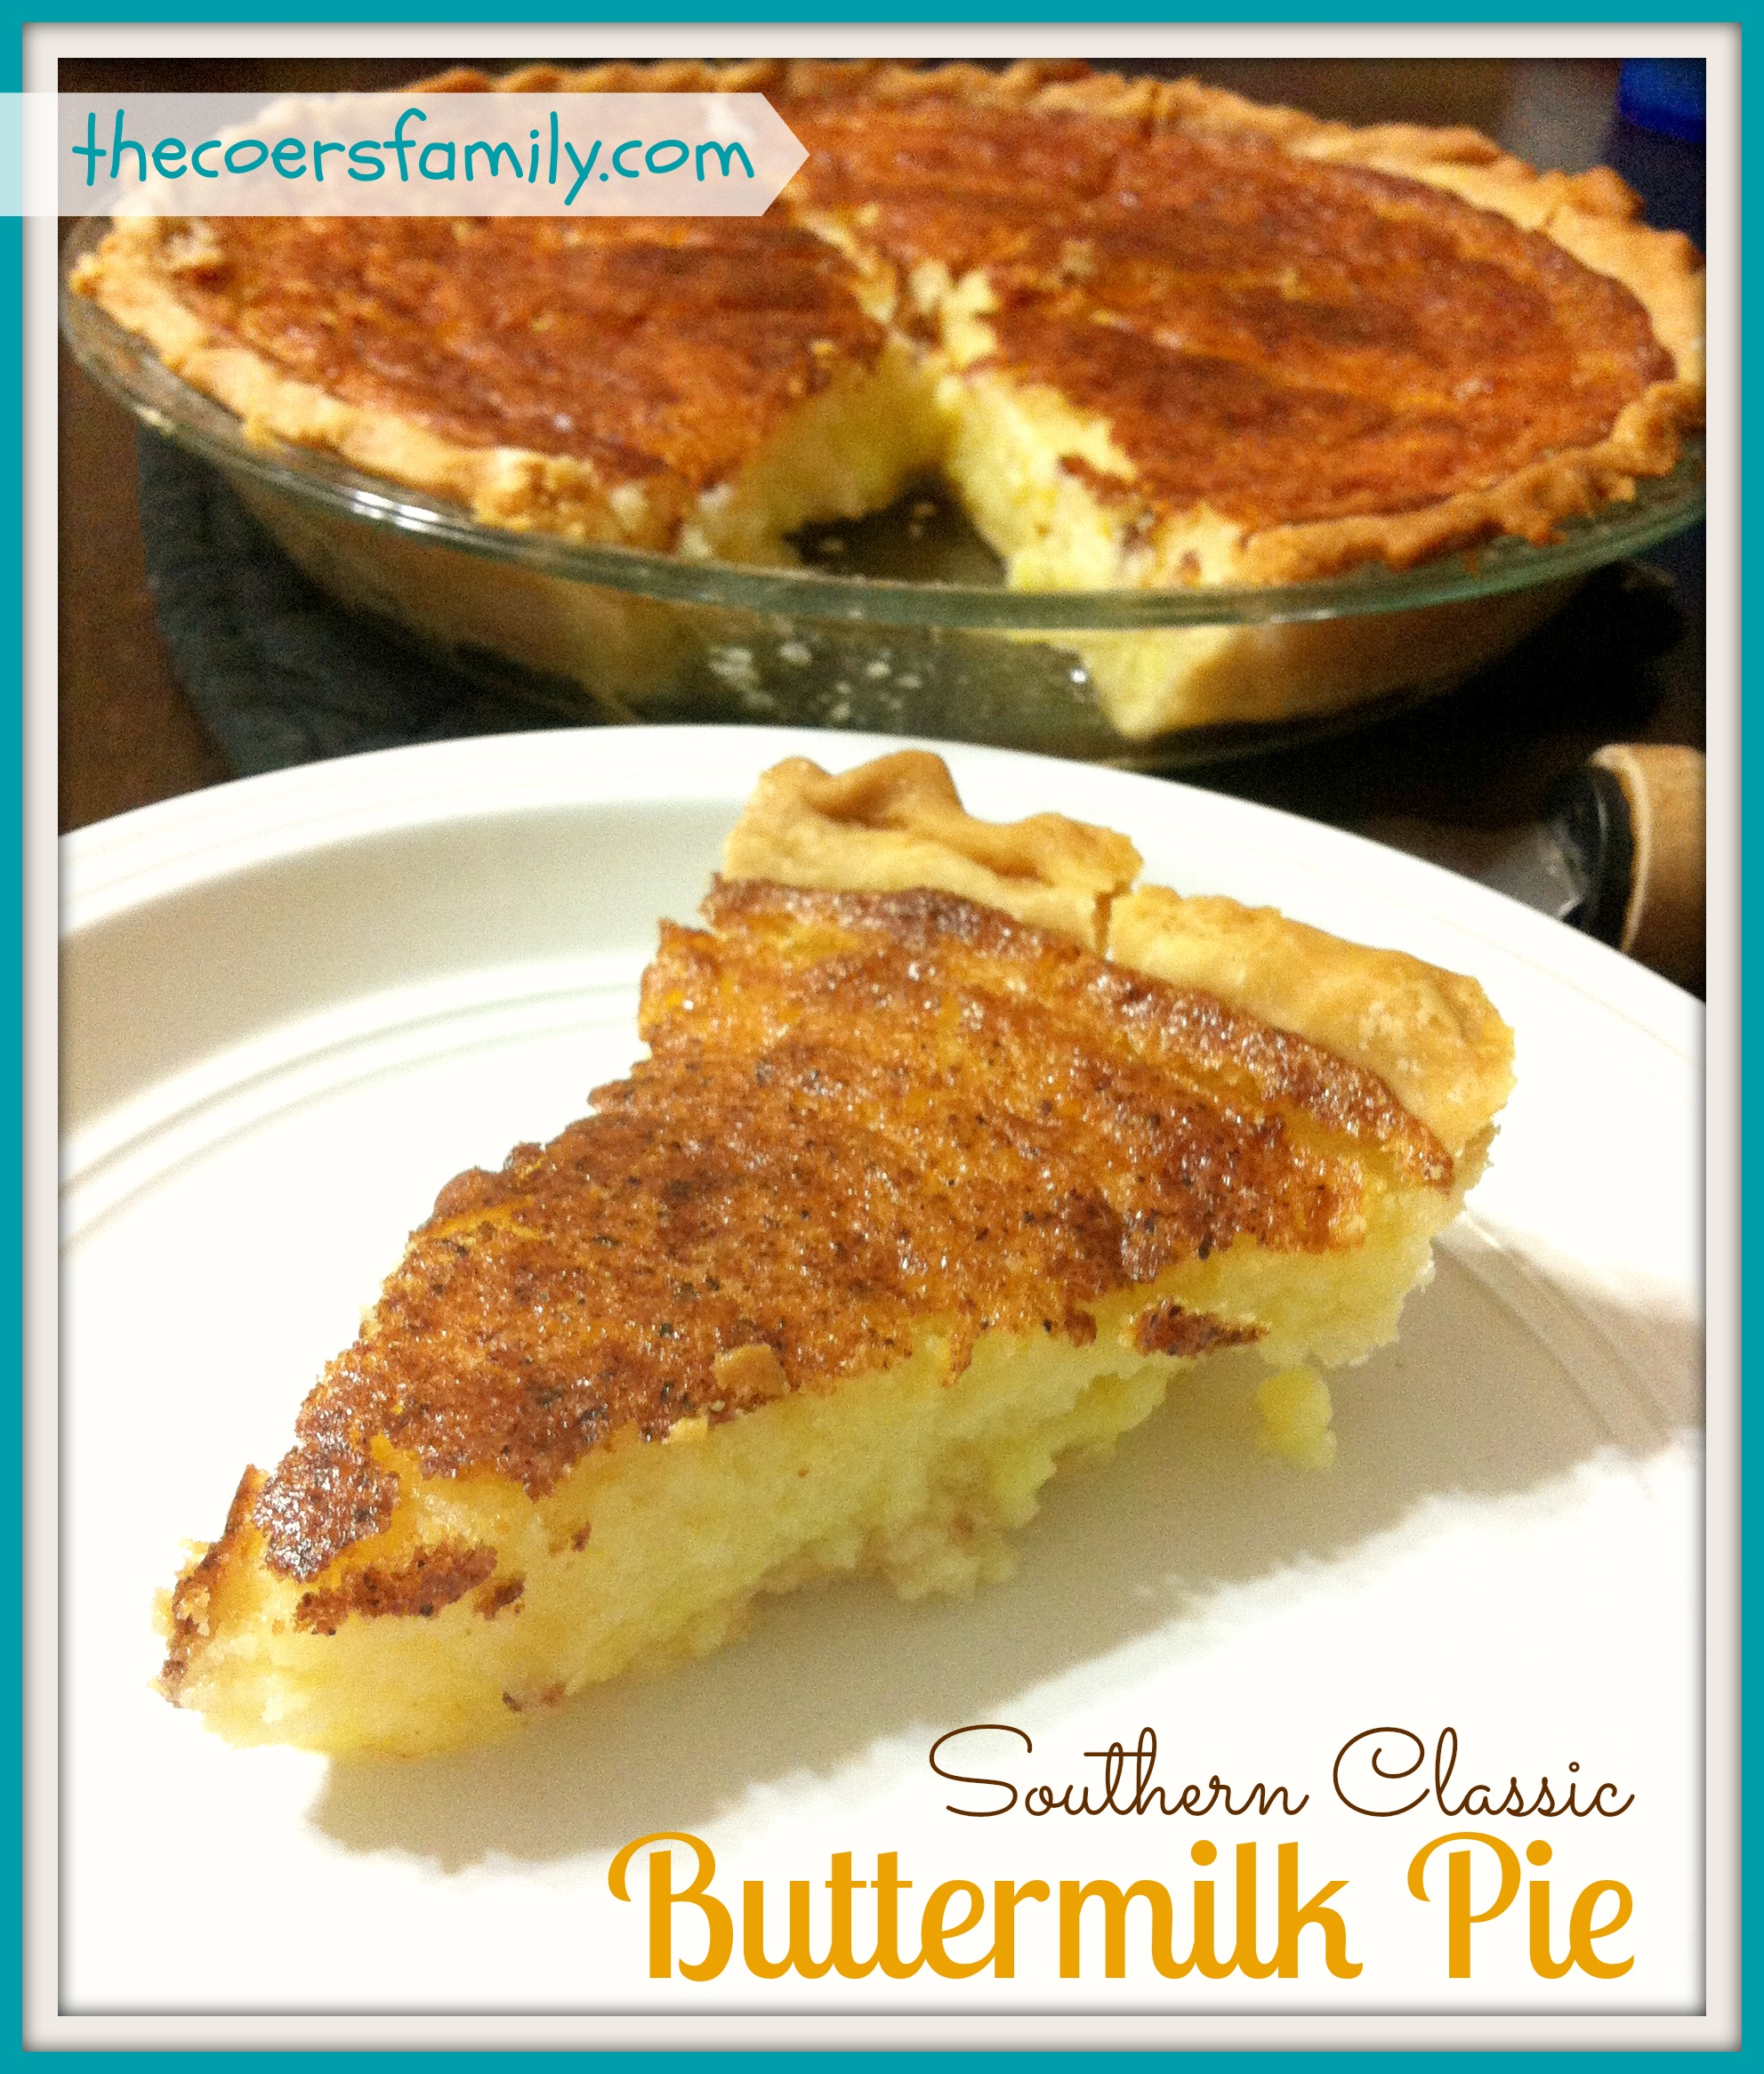 buttermilk pie recipe southern recipes nanny classic ever thecoersfamily pies easy fashioned dishmaps favorite crust most butter collect chess later